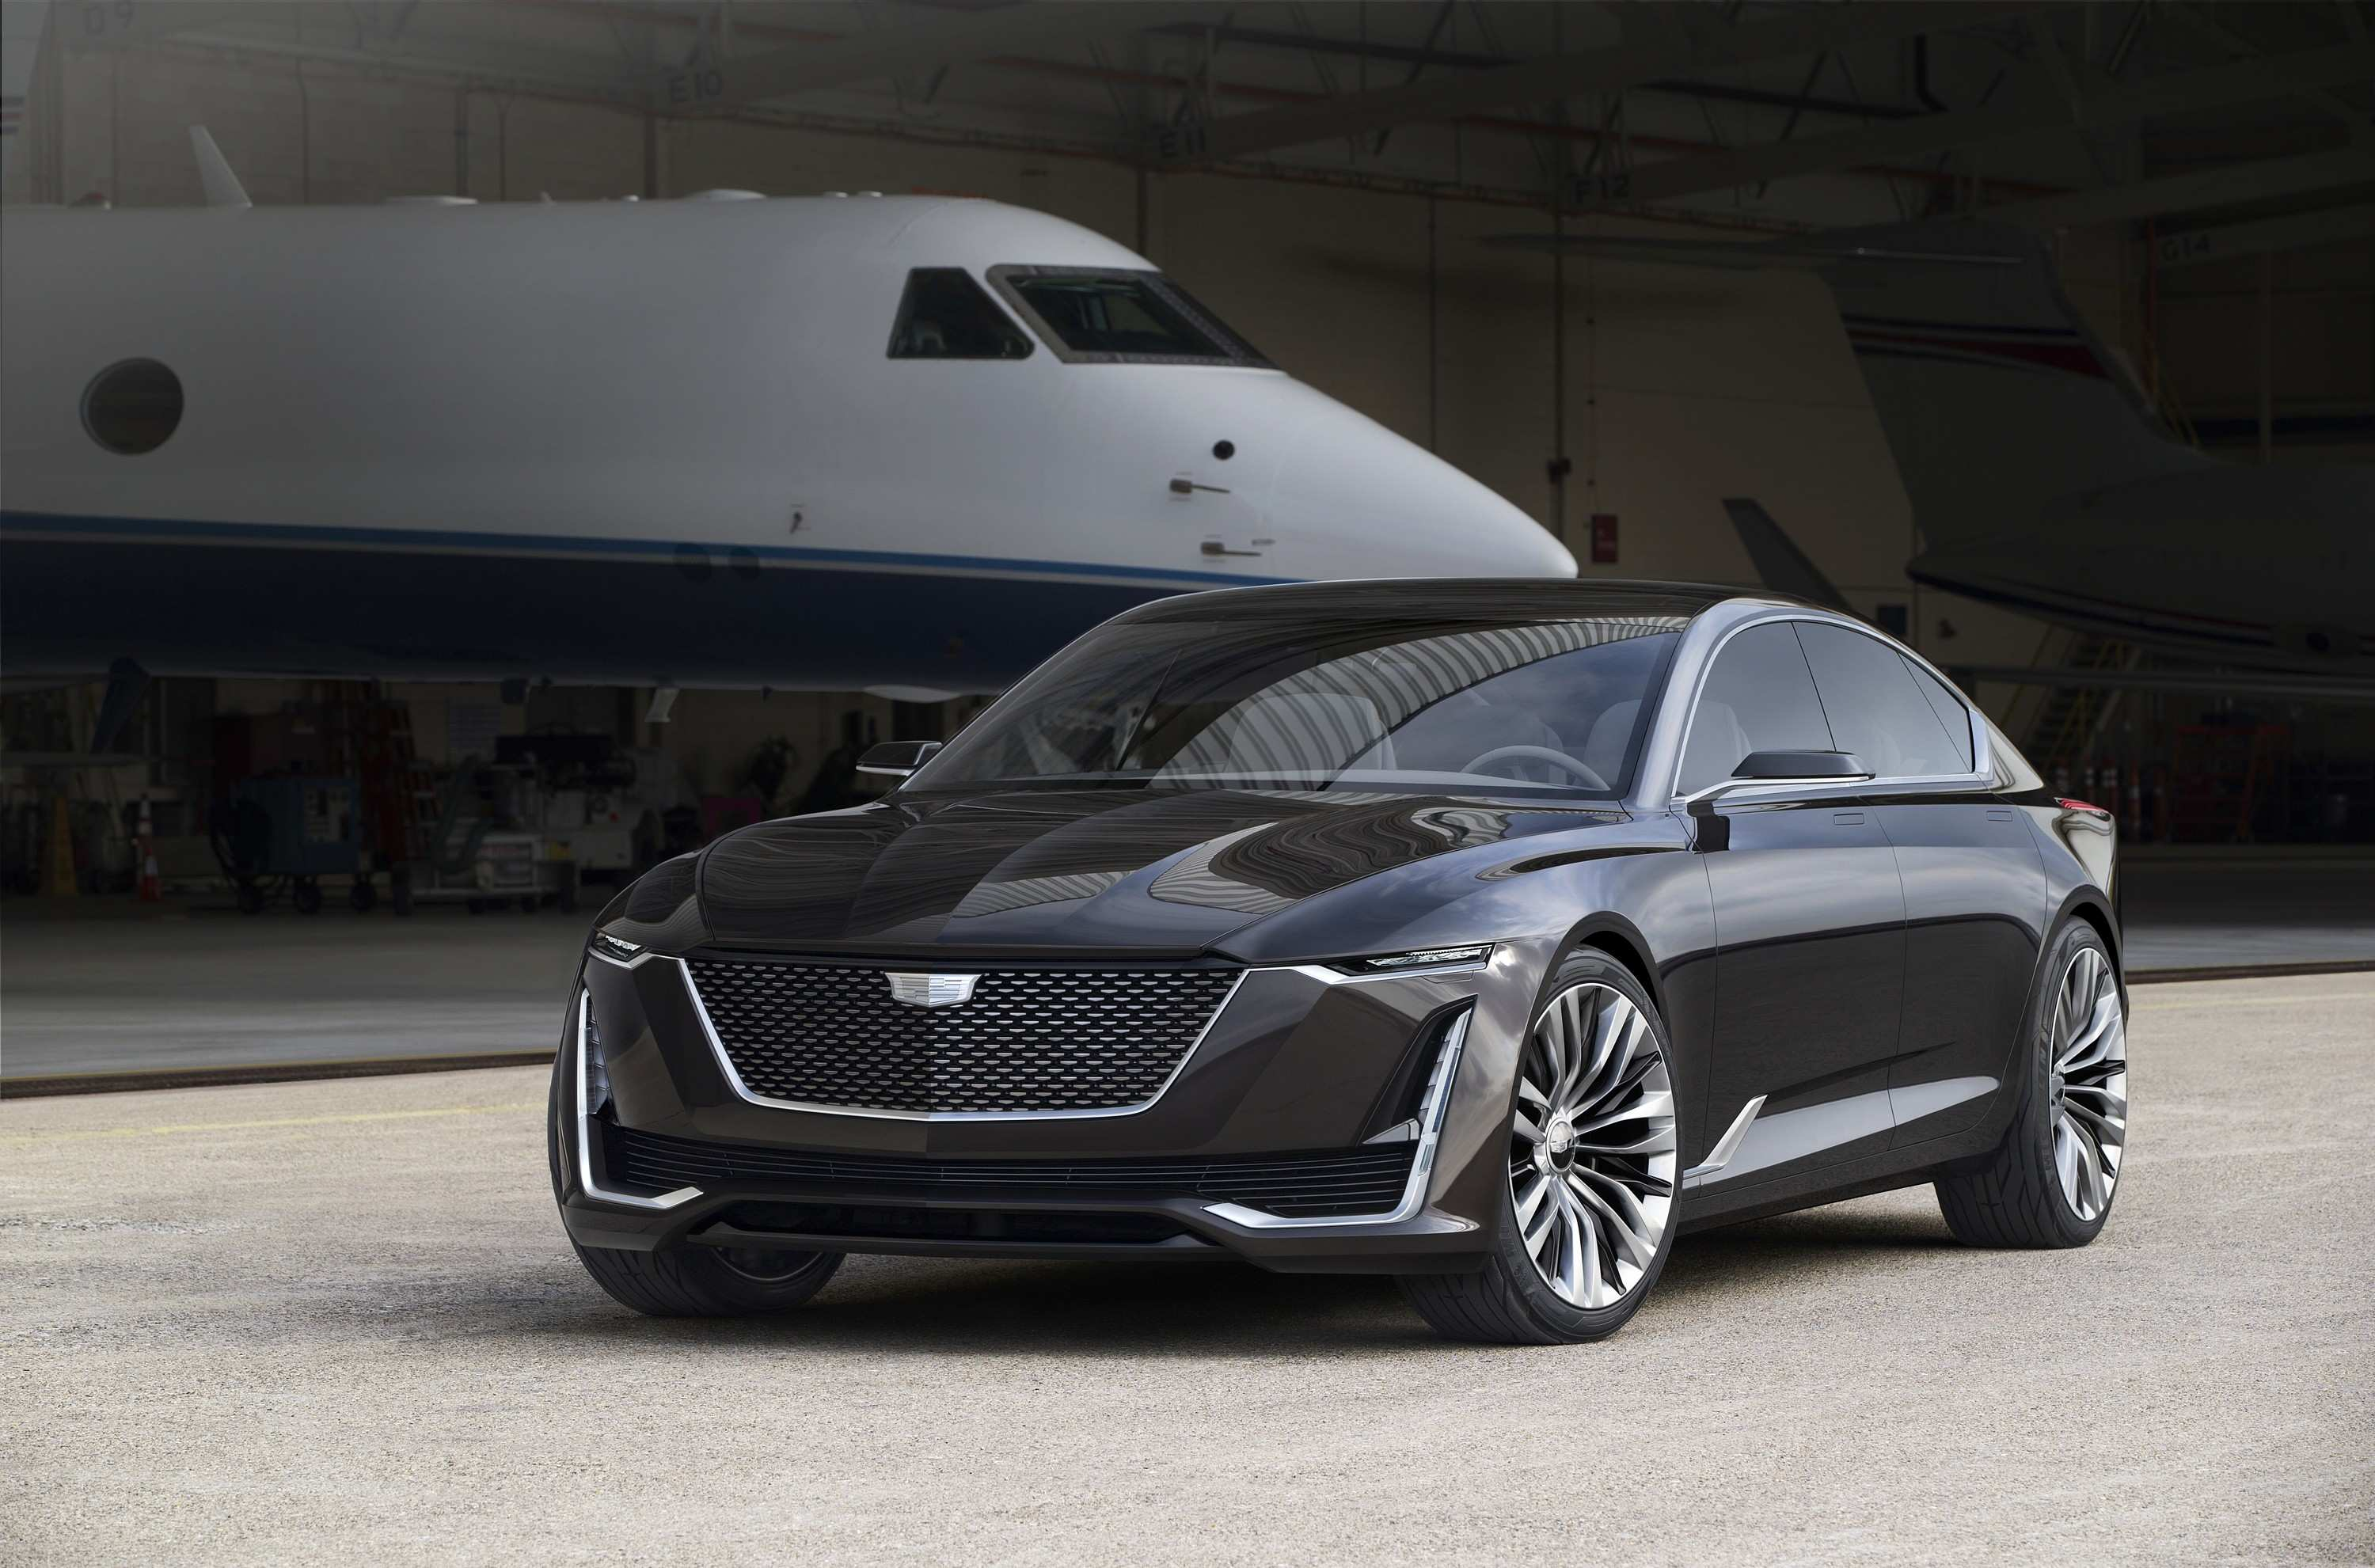 49 Great 2020 Candillac Xts Performance and New Engine with 2020 Candillac Xts